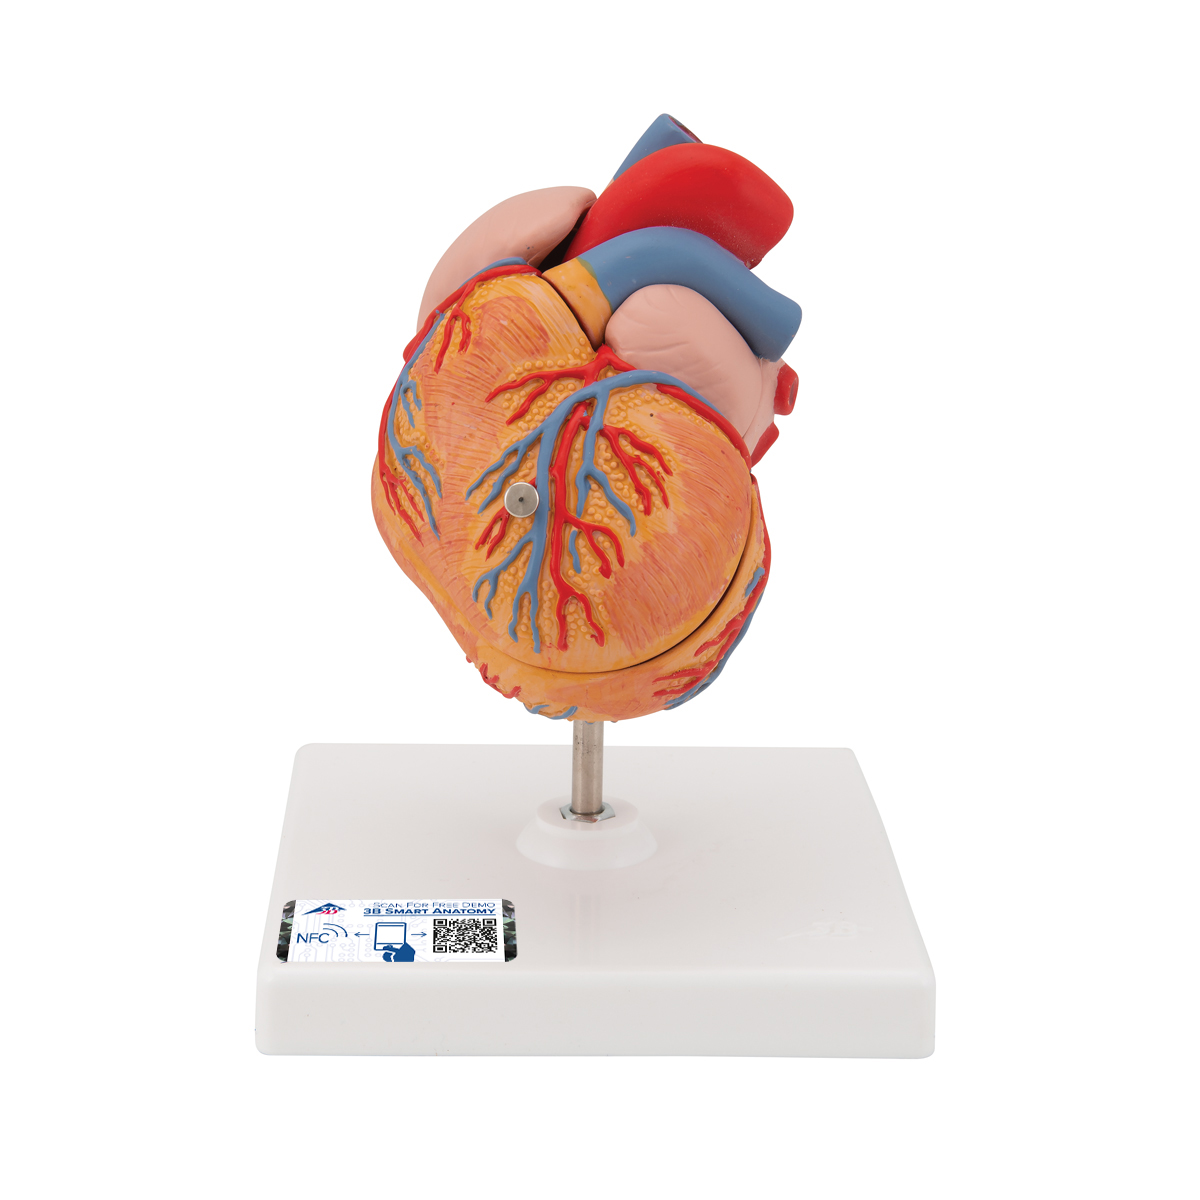 Anatomical Heart Model - Anatomy of the Heart - Left Ventricular ...